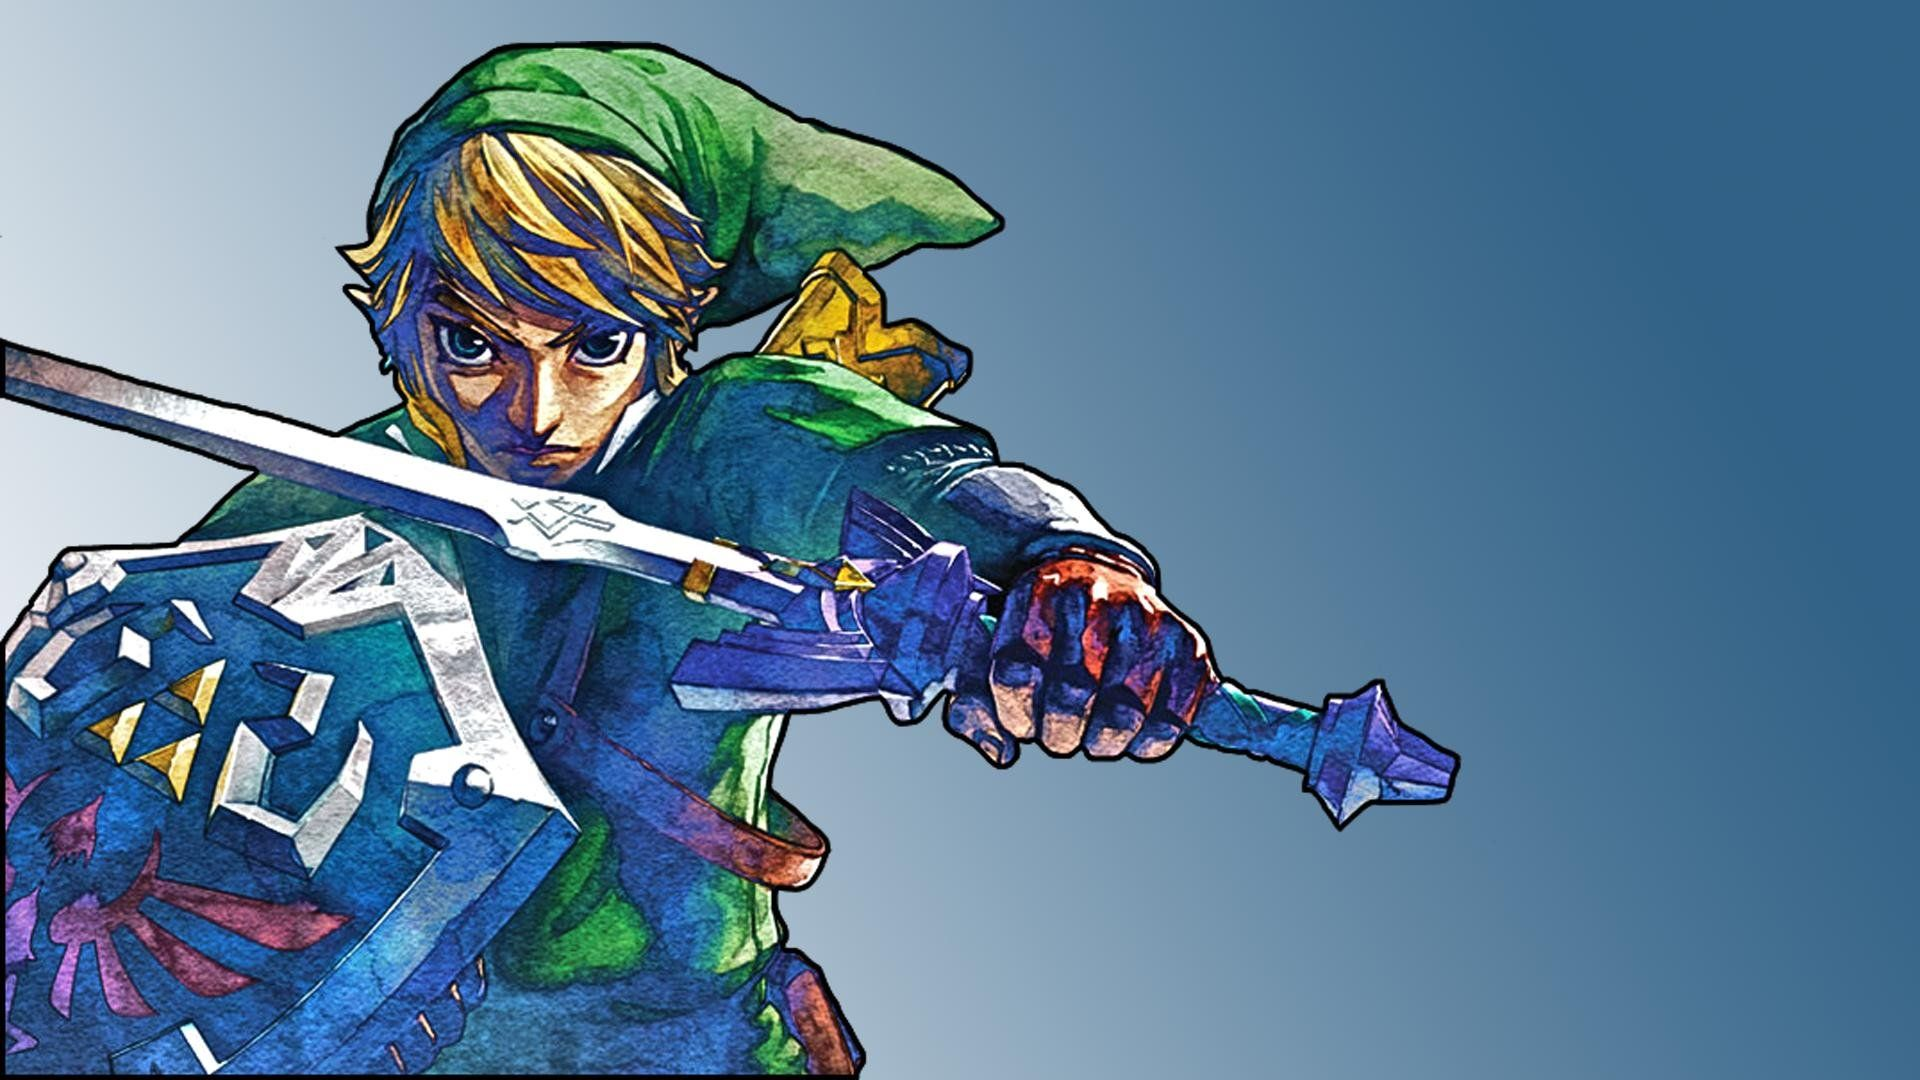 Legend Of Zelda Wallpapers Part Album On Imgur Zelda Skyward